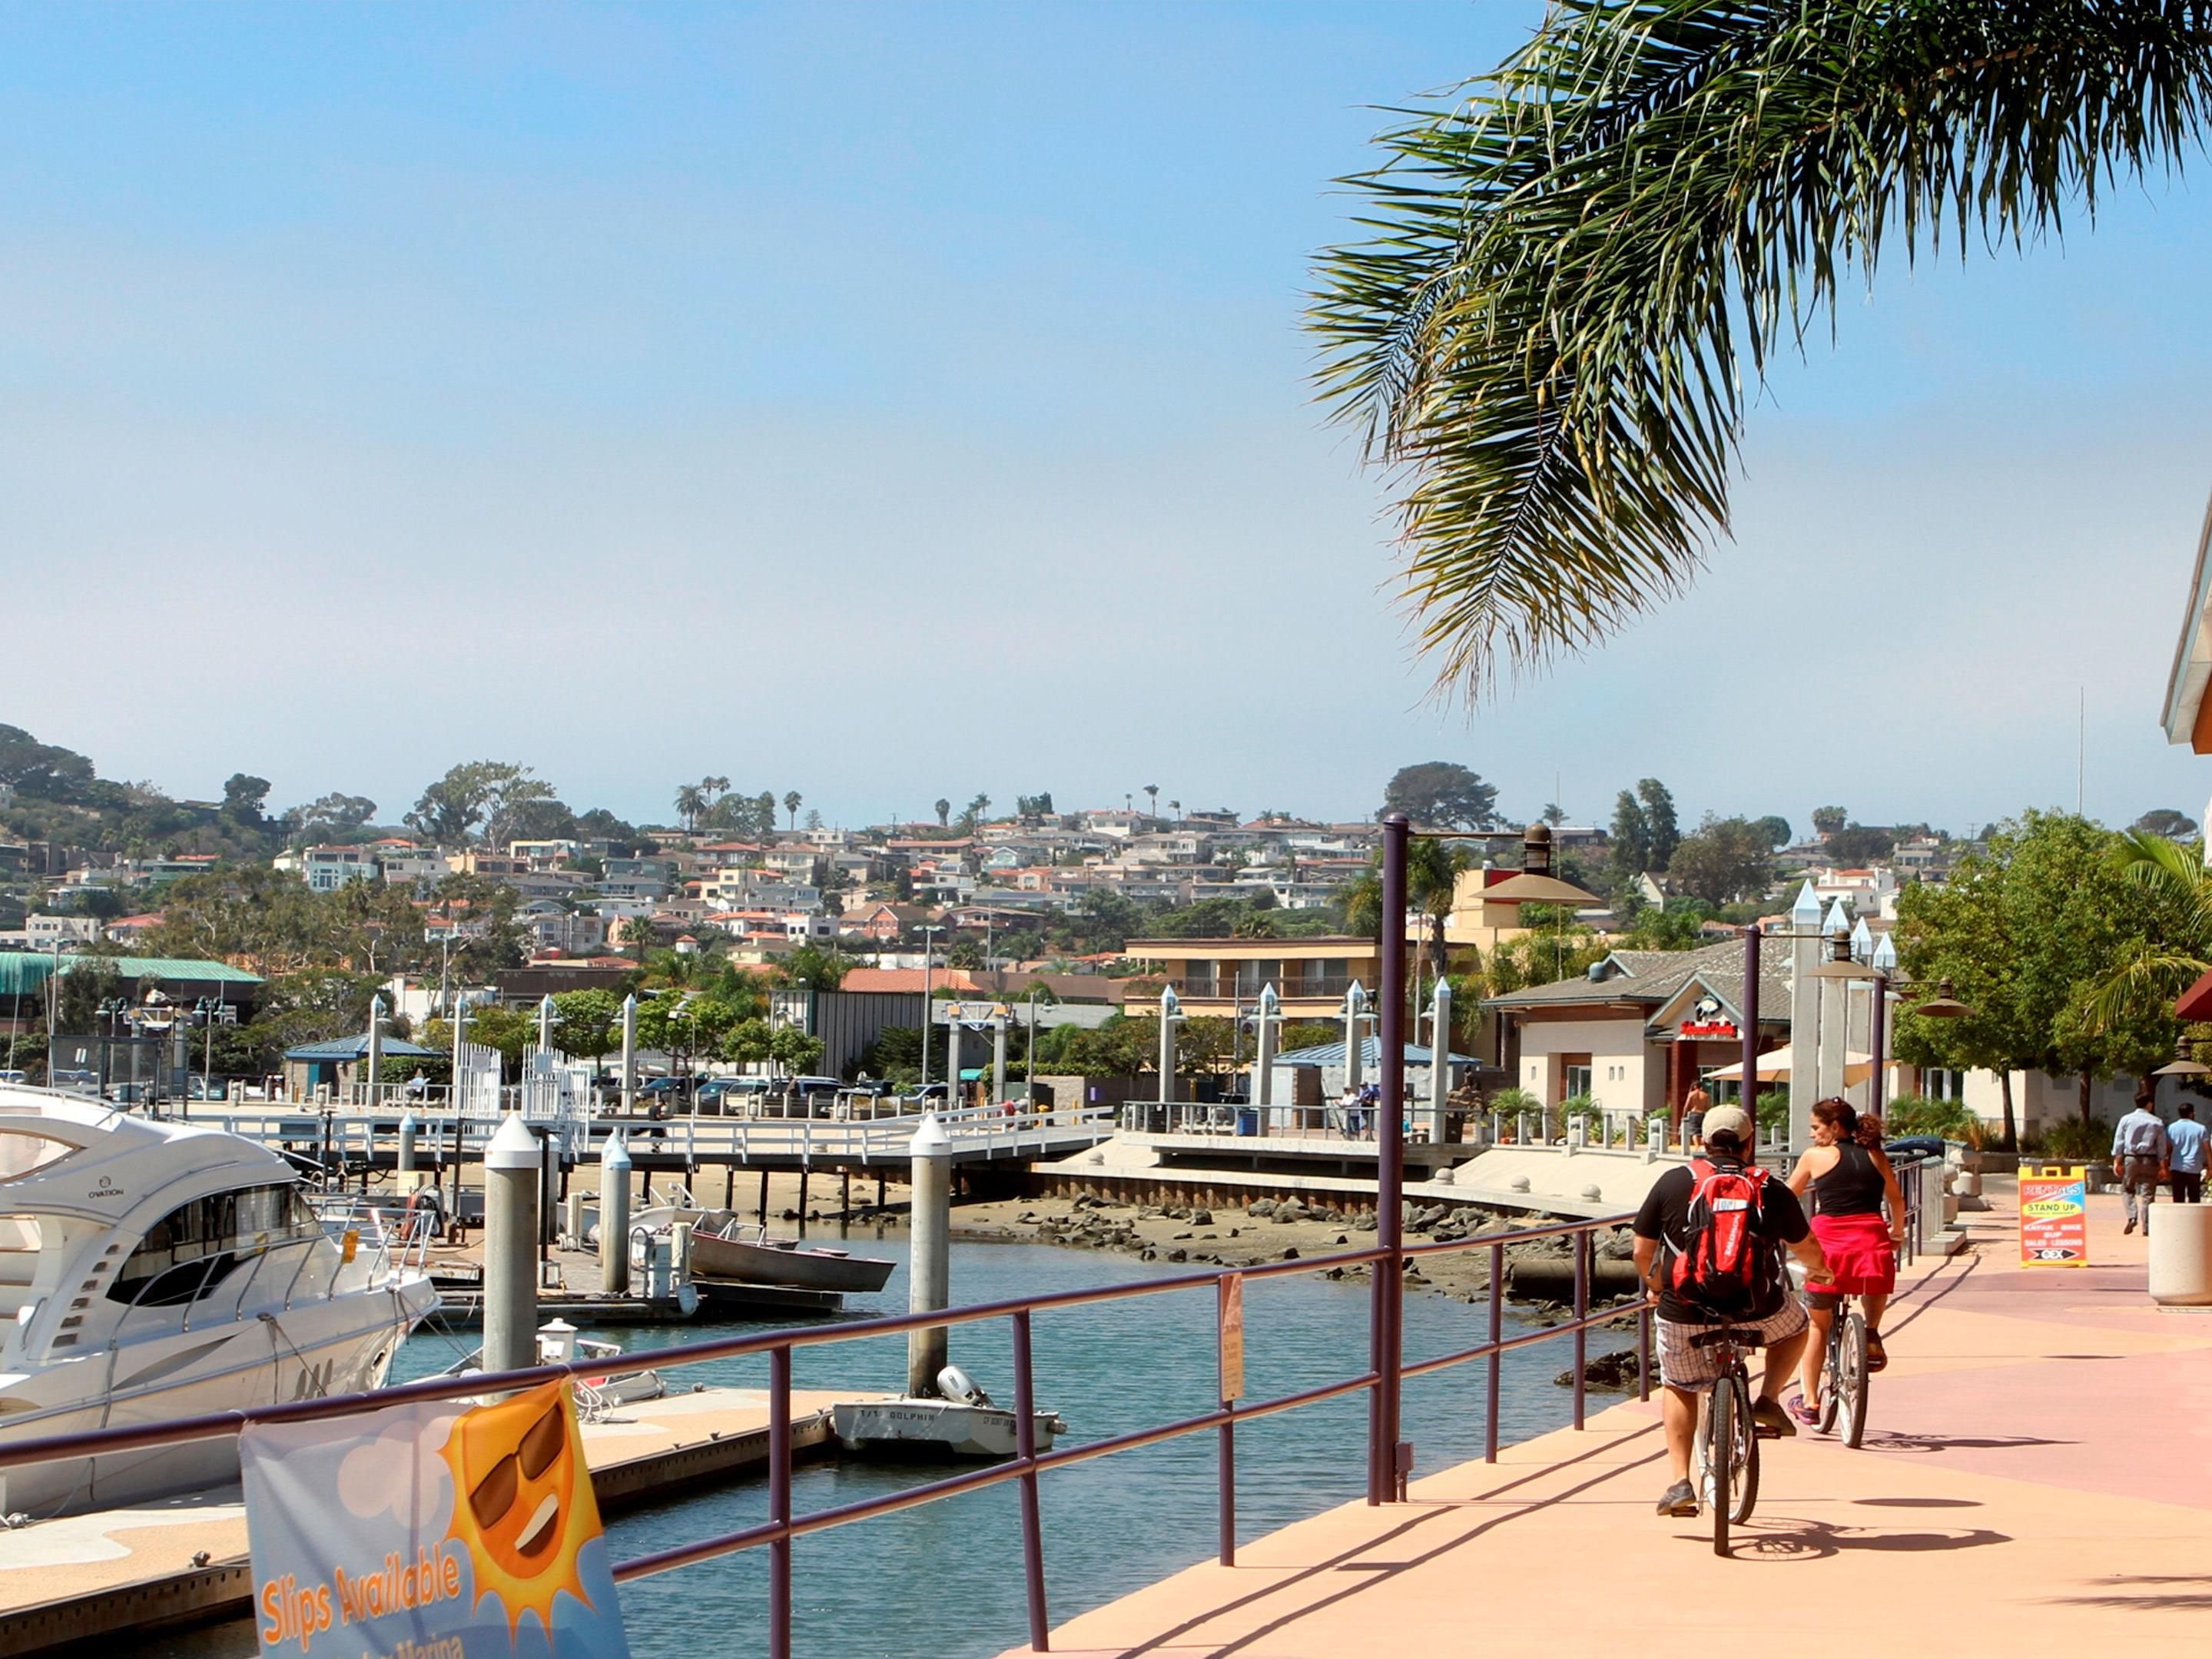 Take a stroll or a bike ride along the bayside path